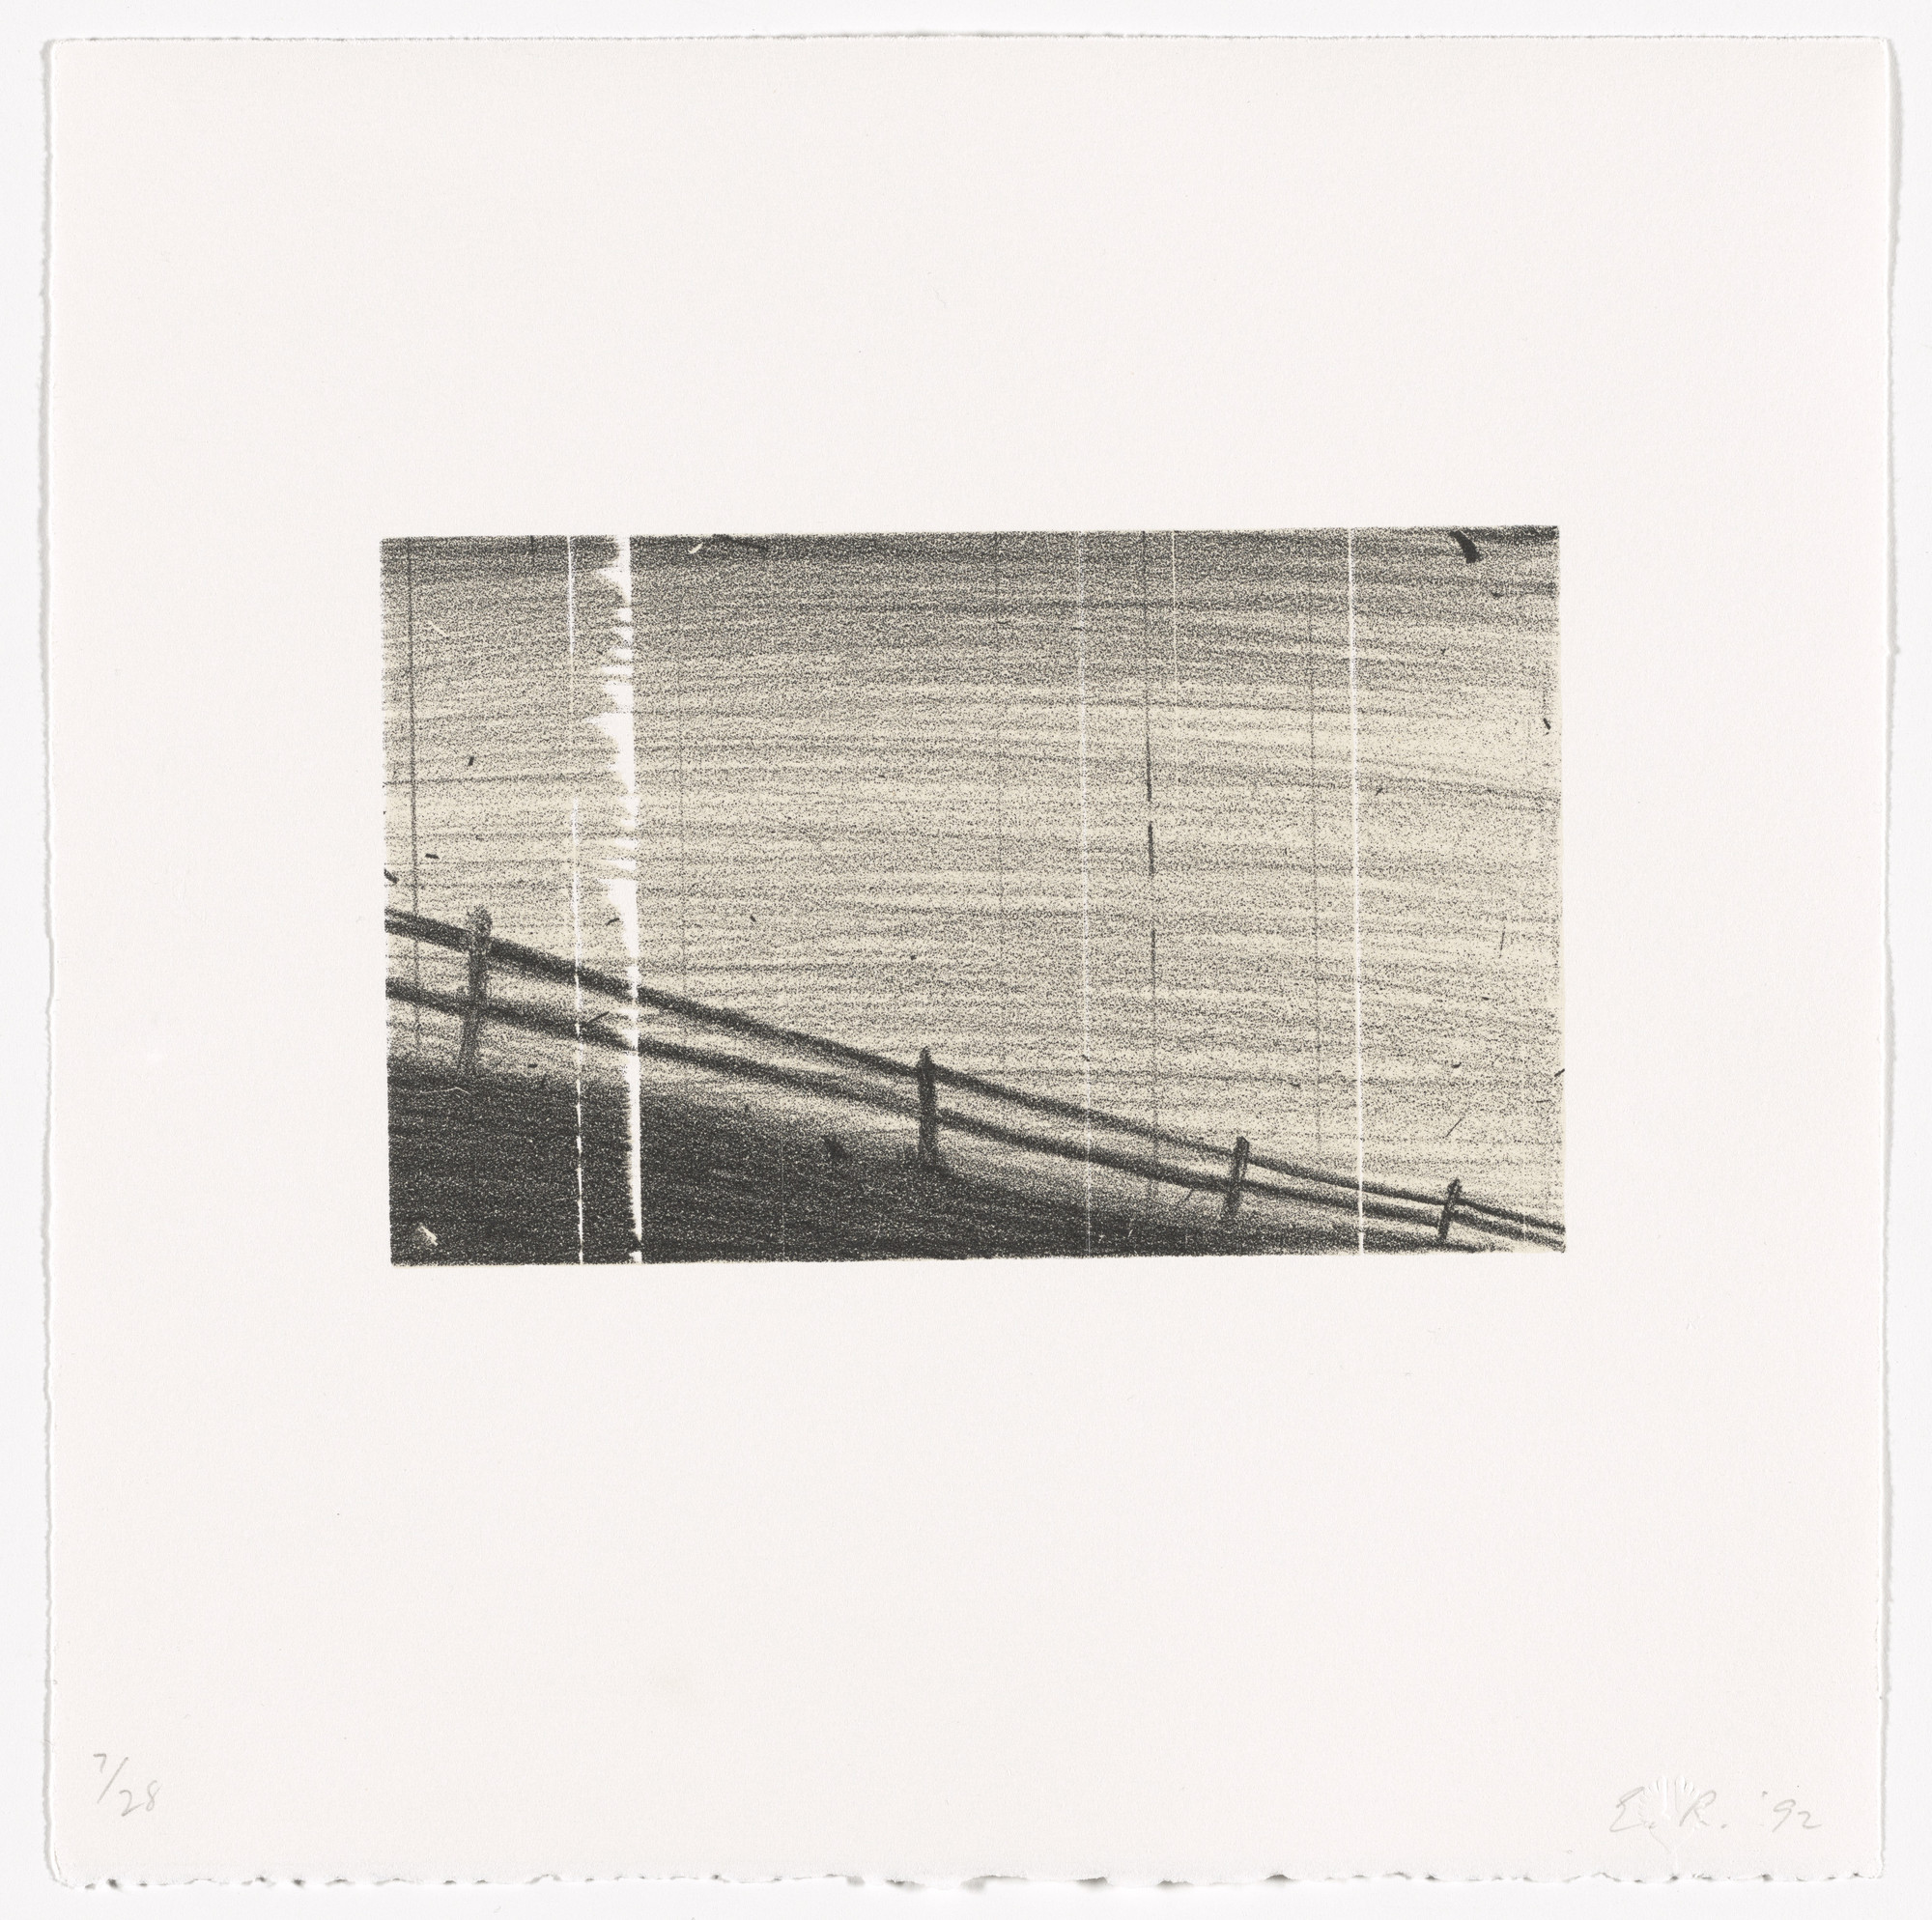 Edward Ruscha. Fence from Cameo Cuts. 1992